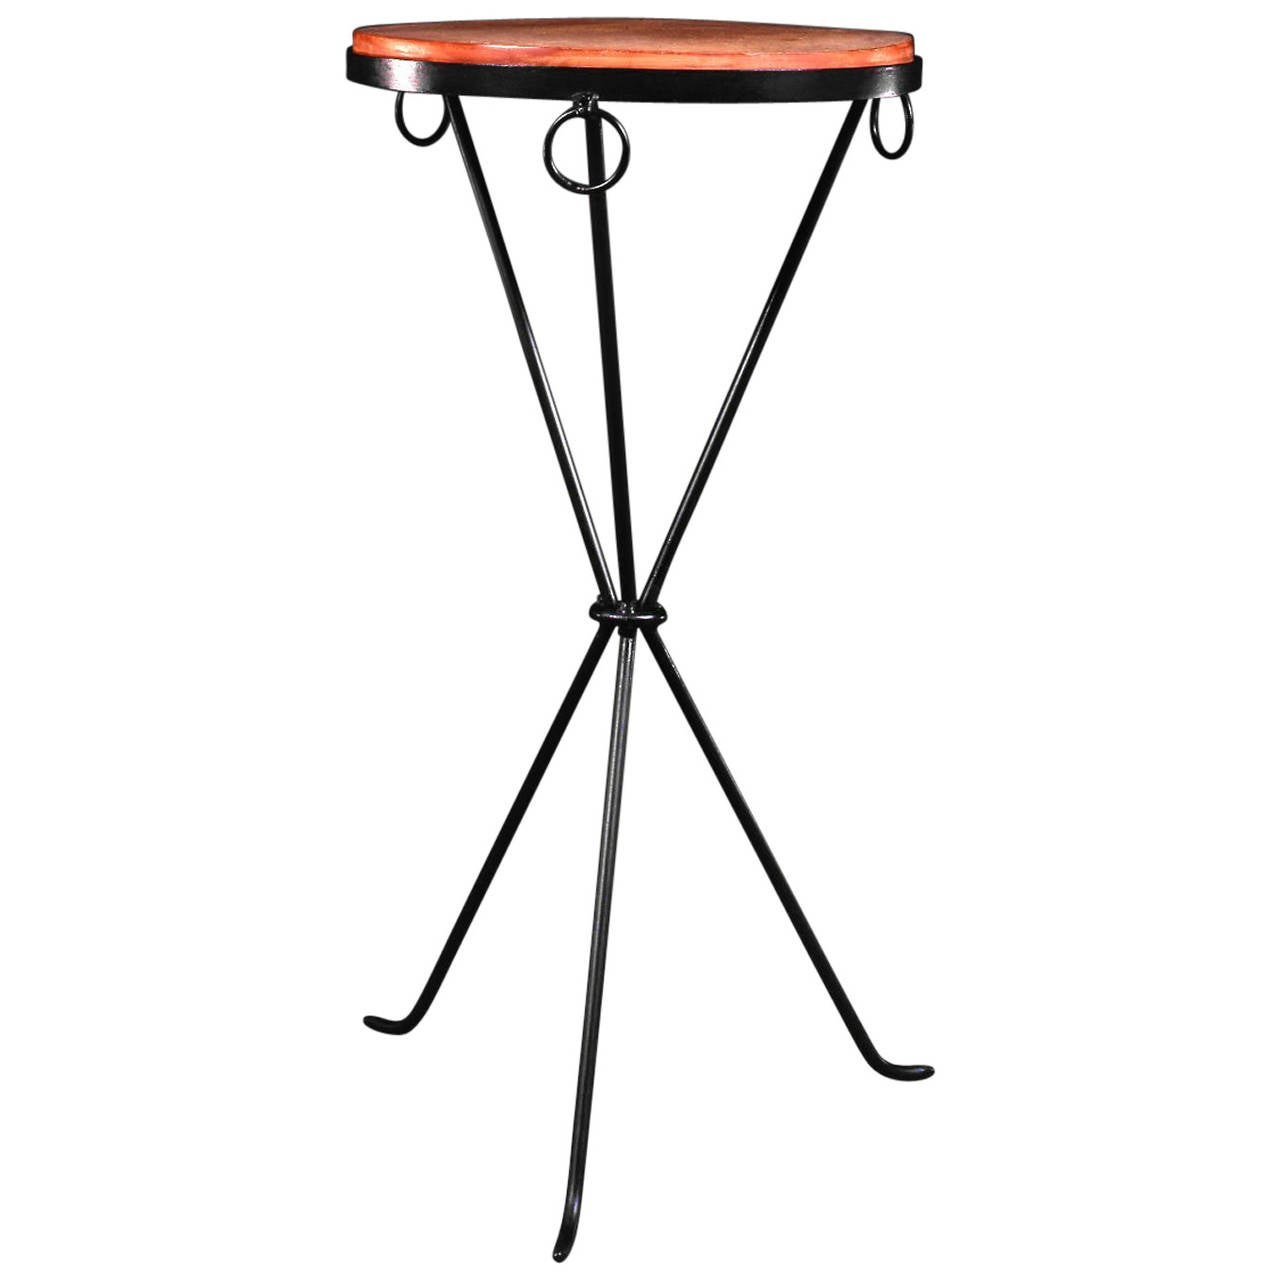 J.M. Frank, Black Patinated Wrought Iron Pedestal Table, 1935